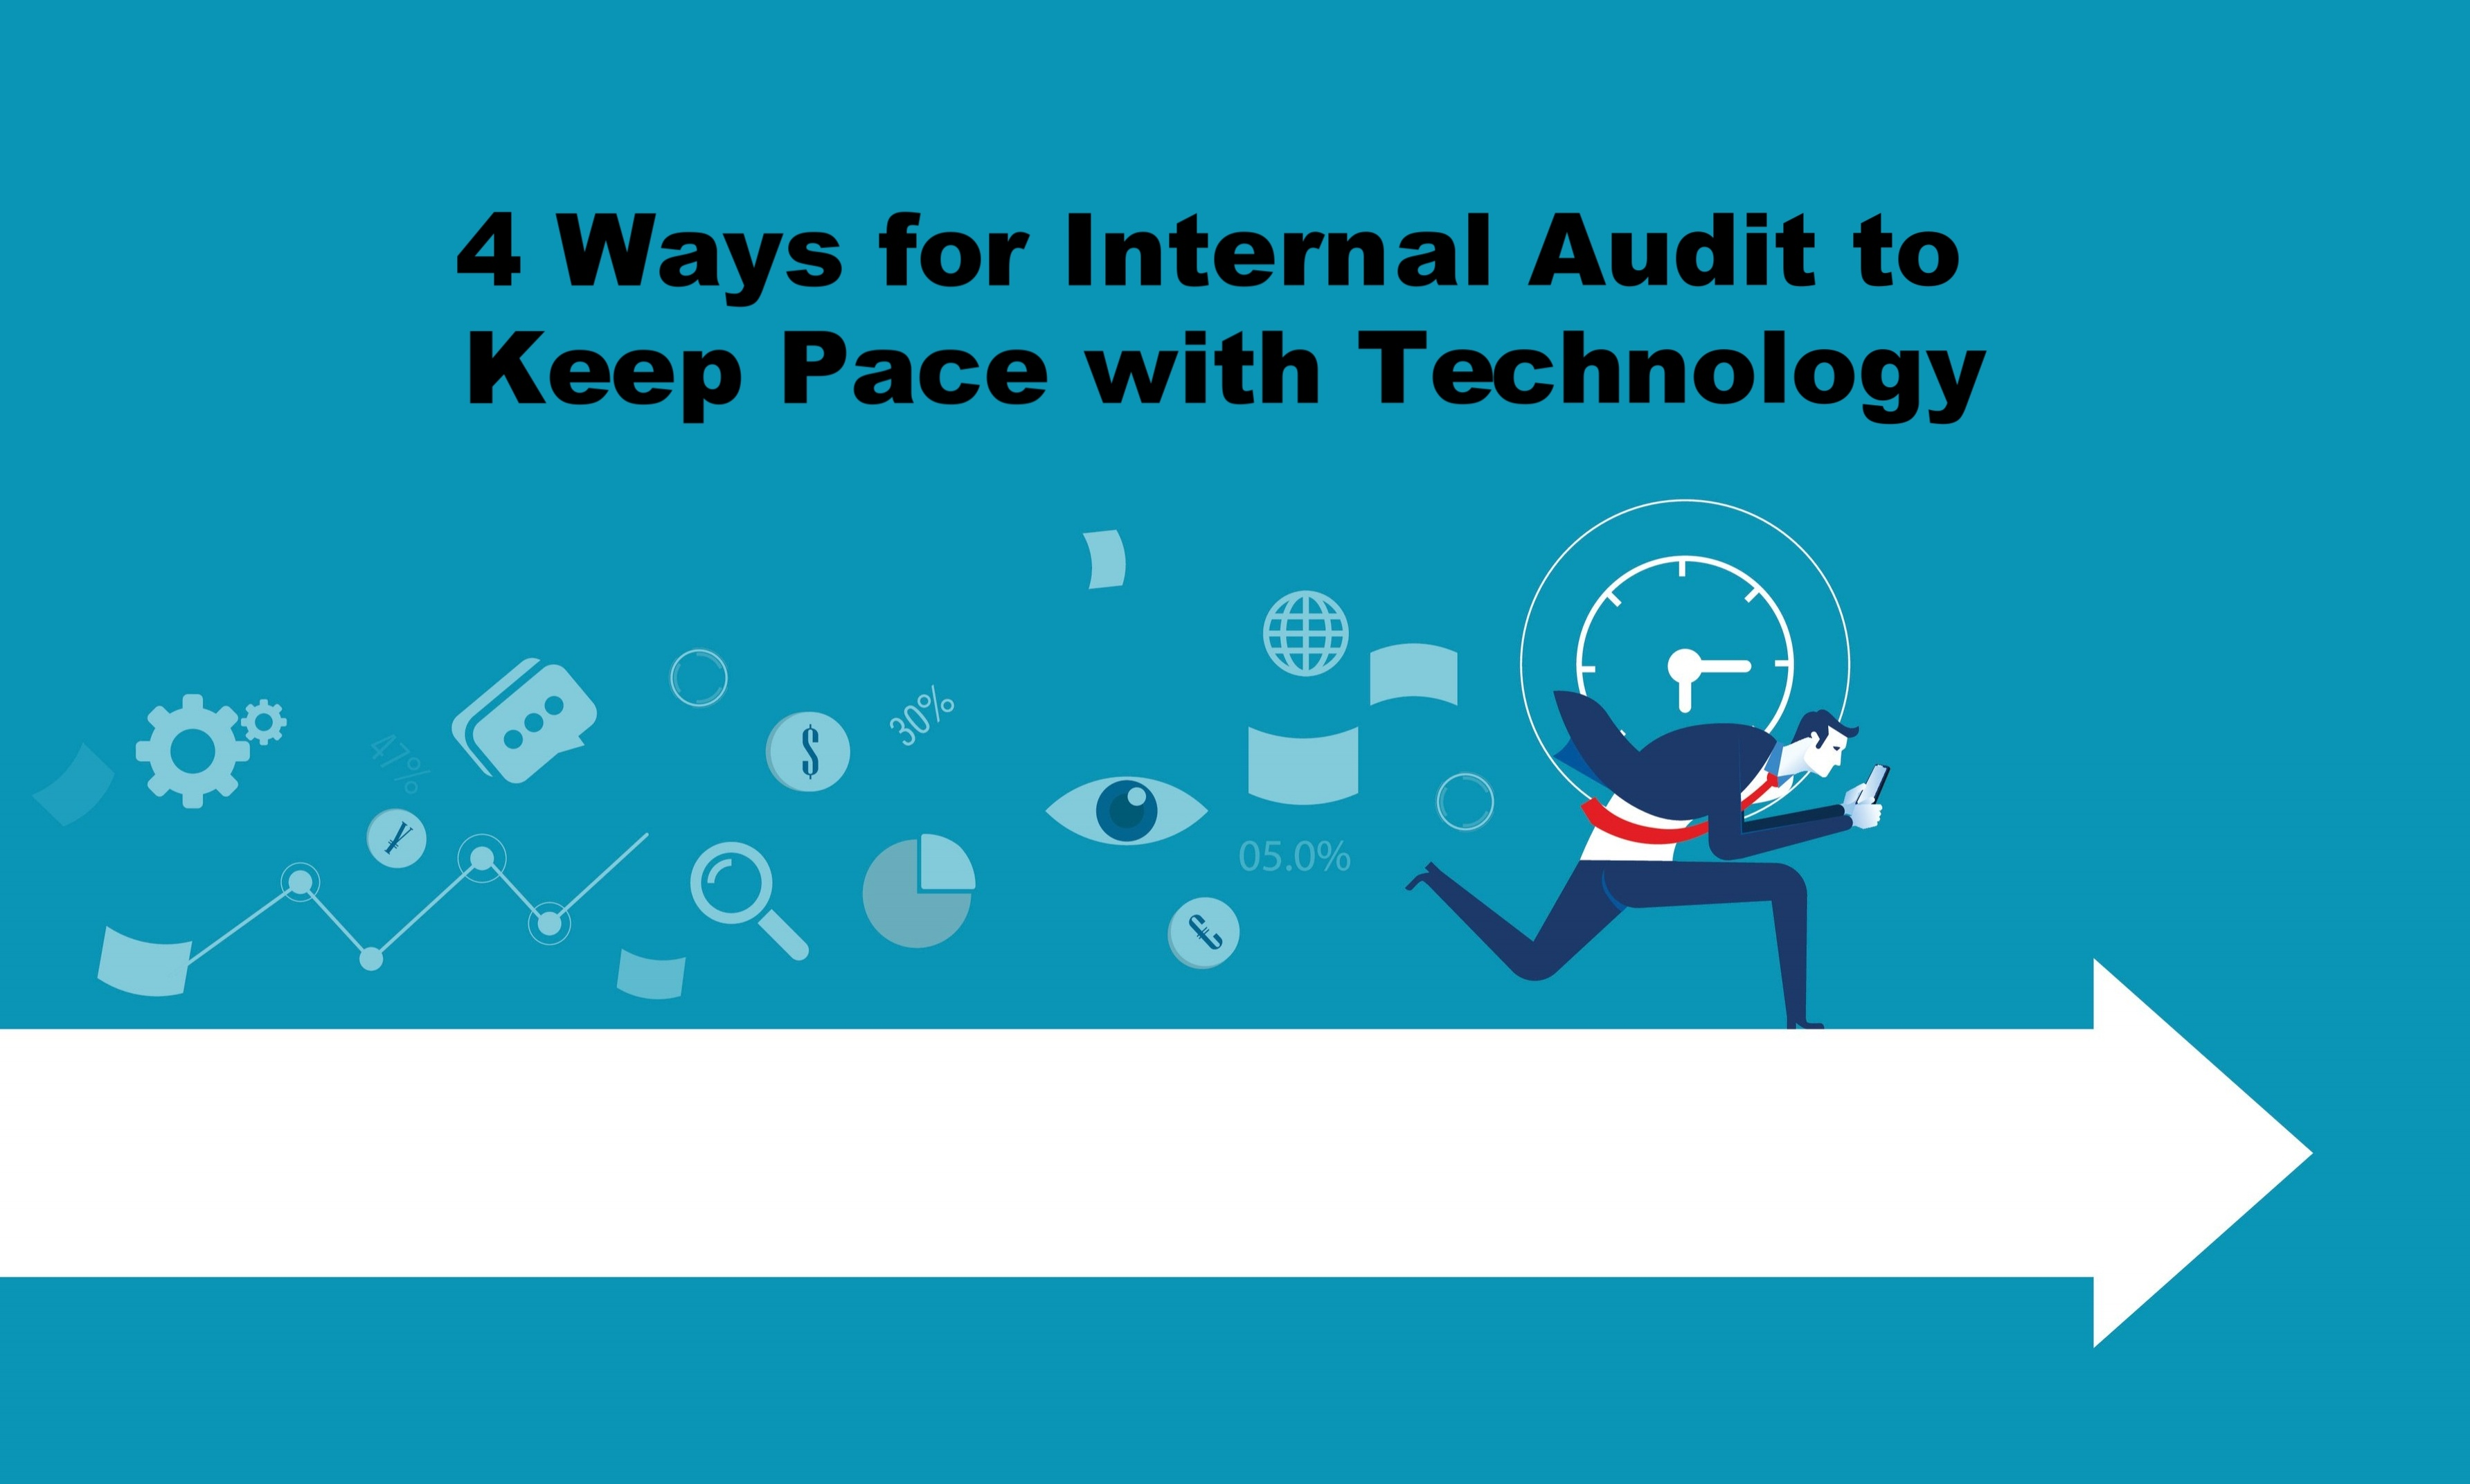 4 Ways for Internal Audit to Keep Pace with Technology